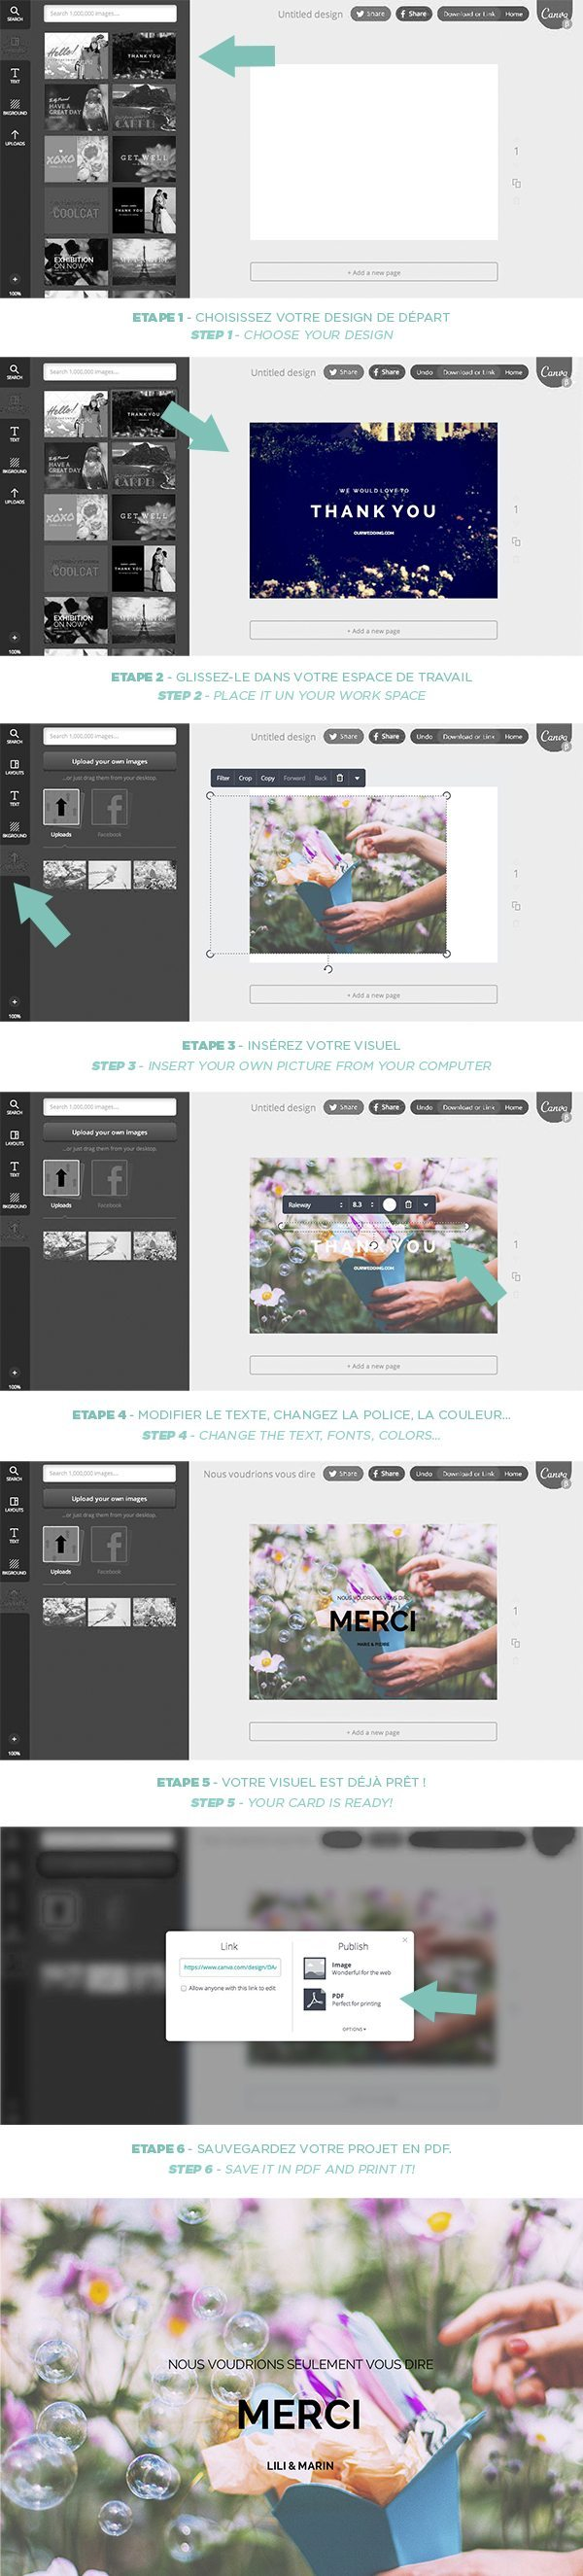 canva-how-to-OK